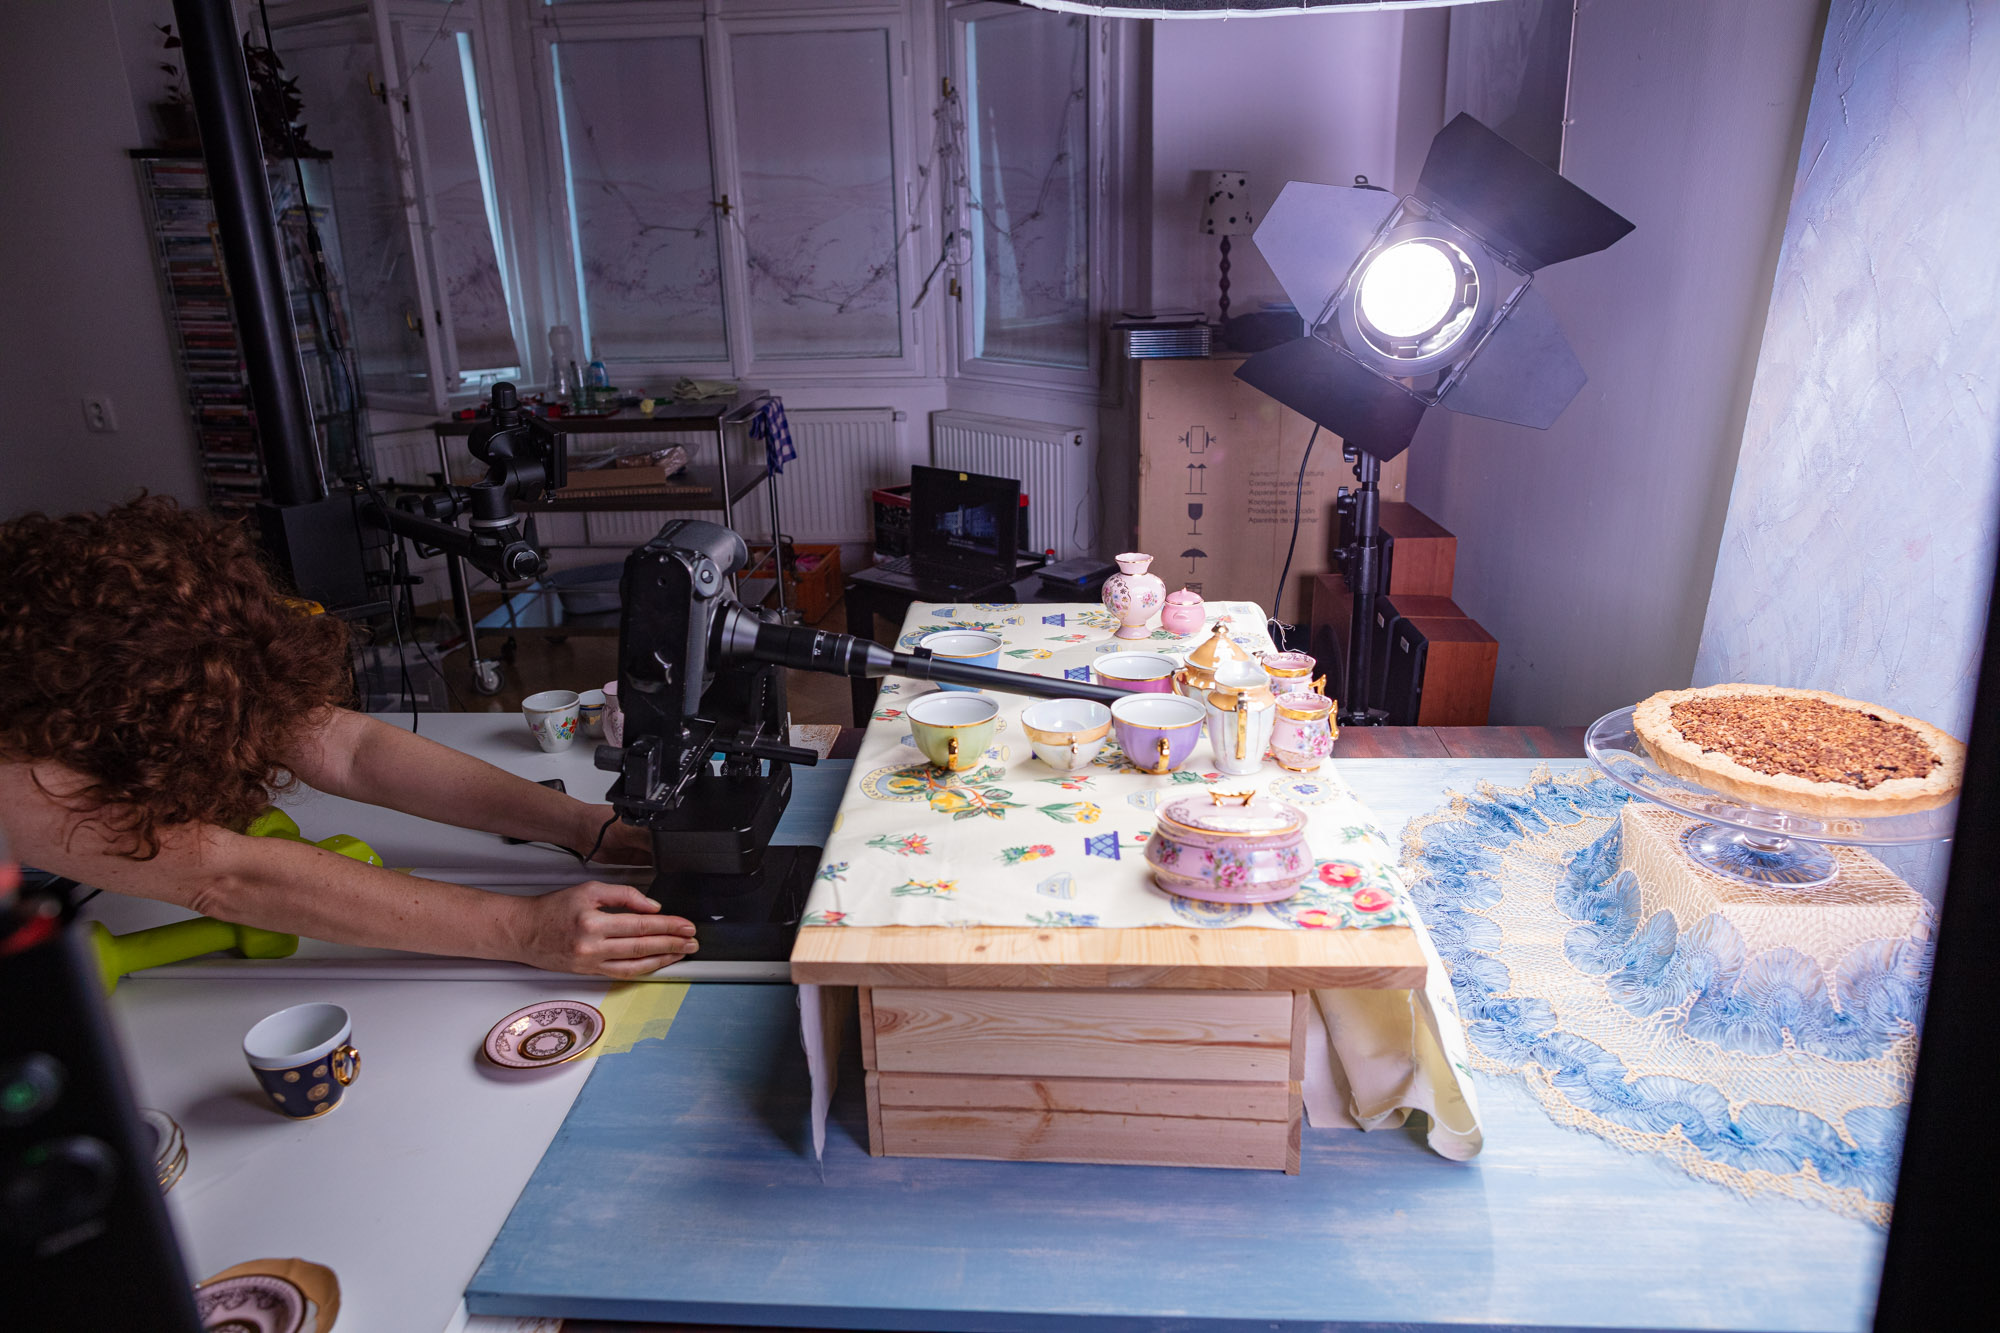 """Behind the scenes at the video production of """"Vegan Cherry Crumble Pie Recipe"""". A big table set up resembling a """"decorated table"""". In a studio with various lamps and cameras. The stylist/art director is checking the angle and camera movement."""